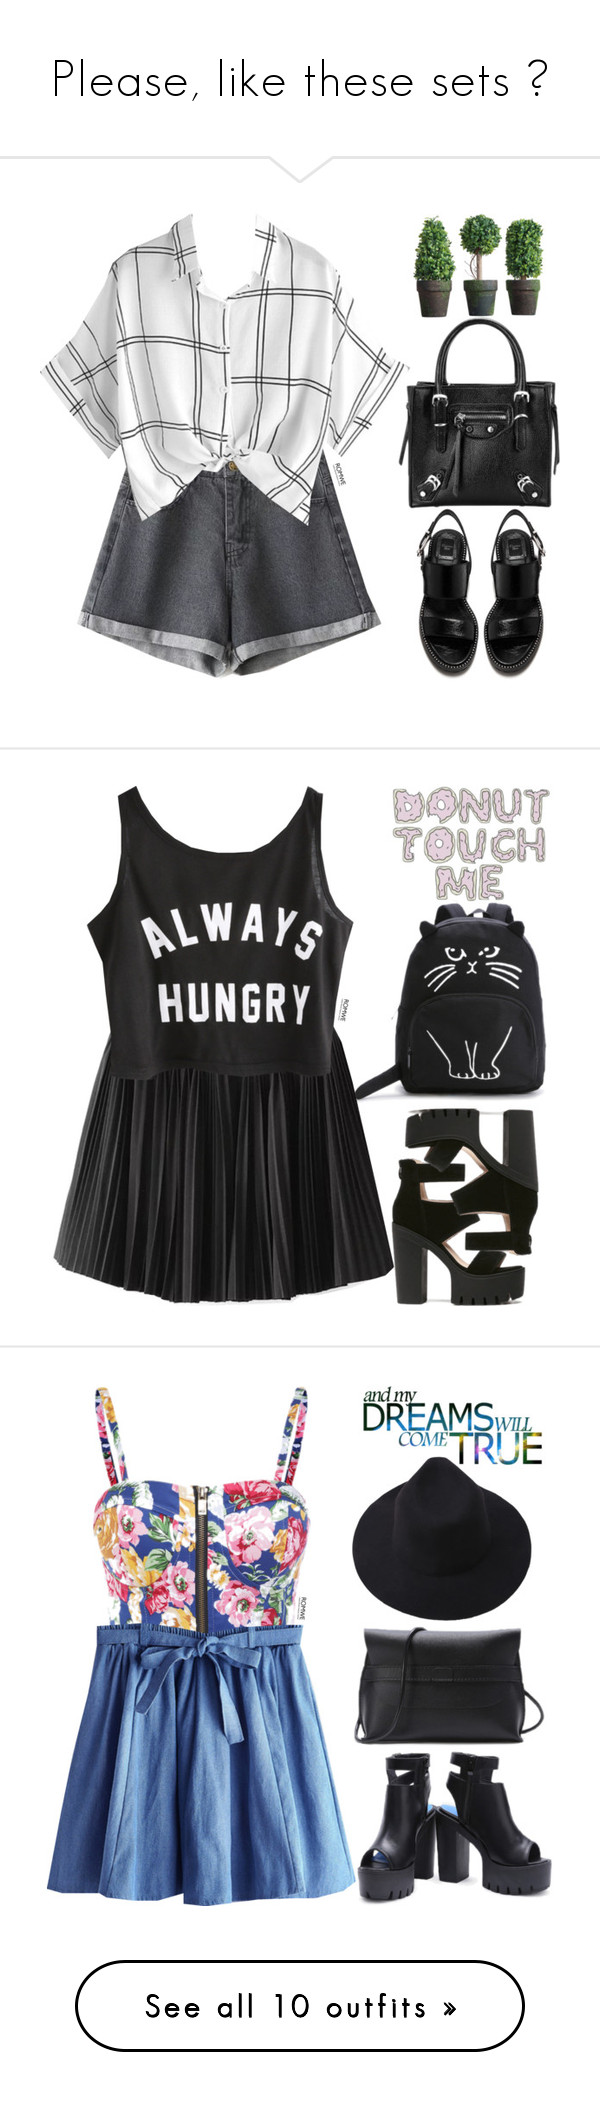 """""""Please, like these sets ♥"""" by fifthdegree ❤ liked on Polyvore featuring blackandwhite, romwe, GET LOST, floral, Dot & Bo, fashionista, Summer, puravida, vintage and simple"""